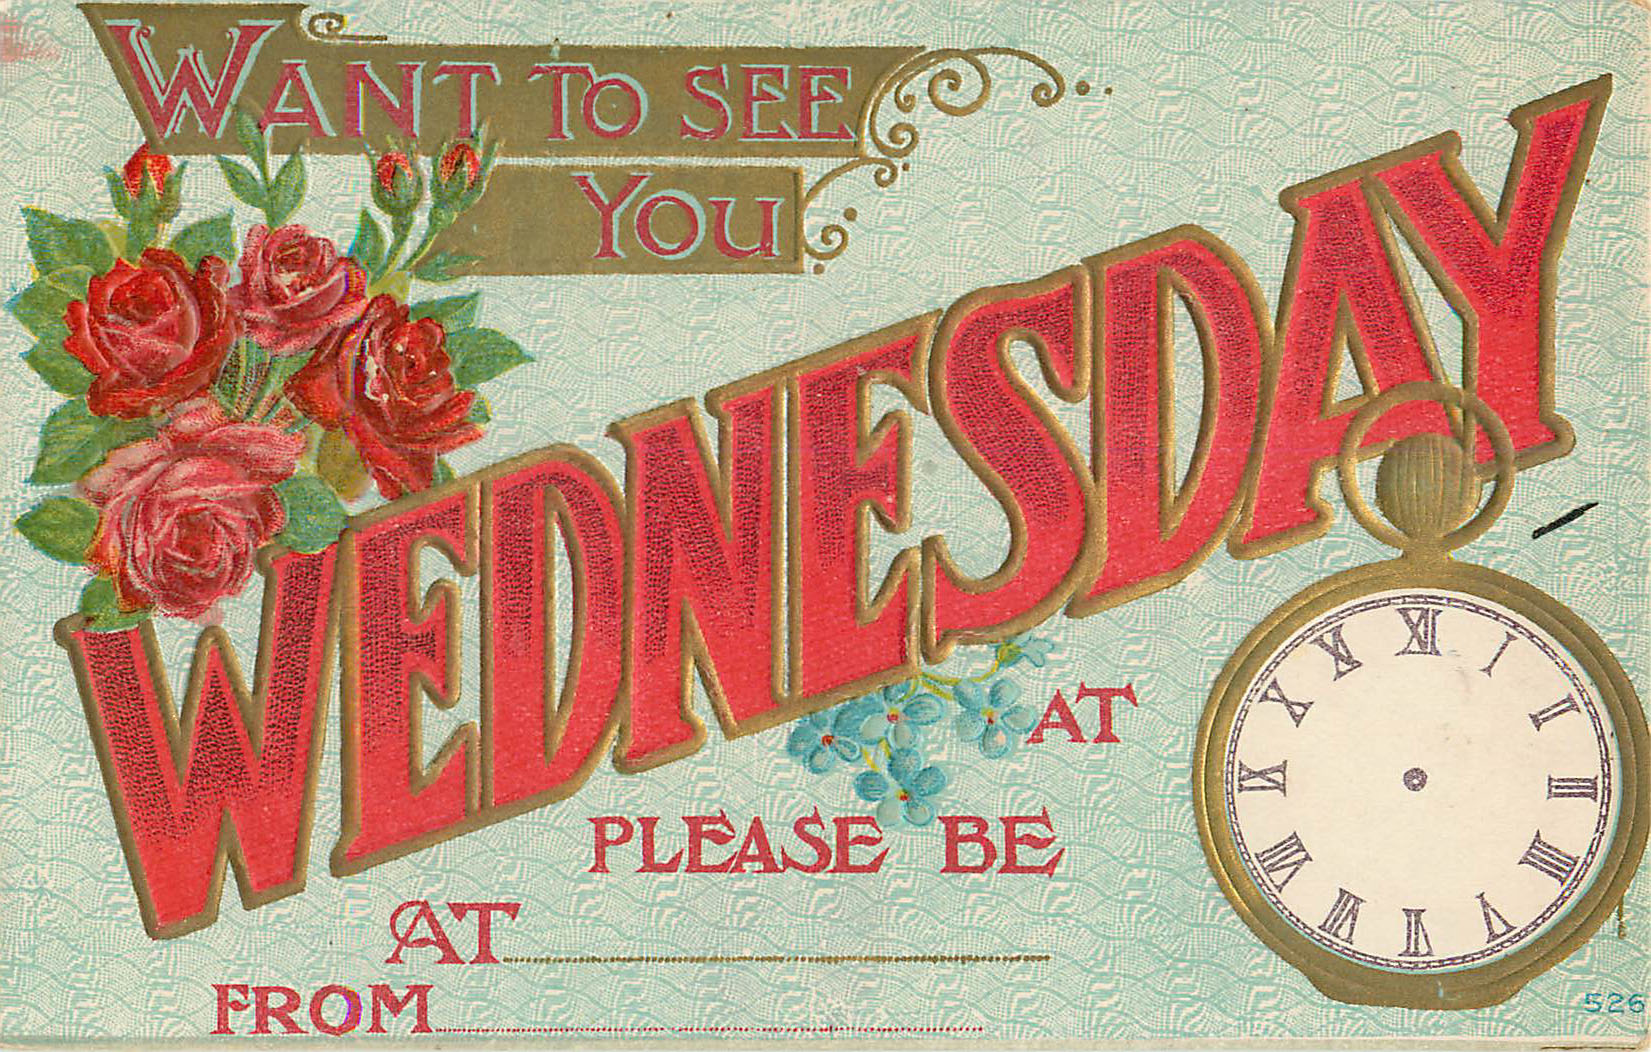 Want to See You Wednesday - Appointment Card